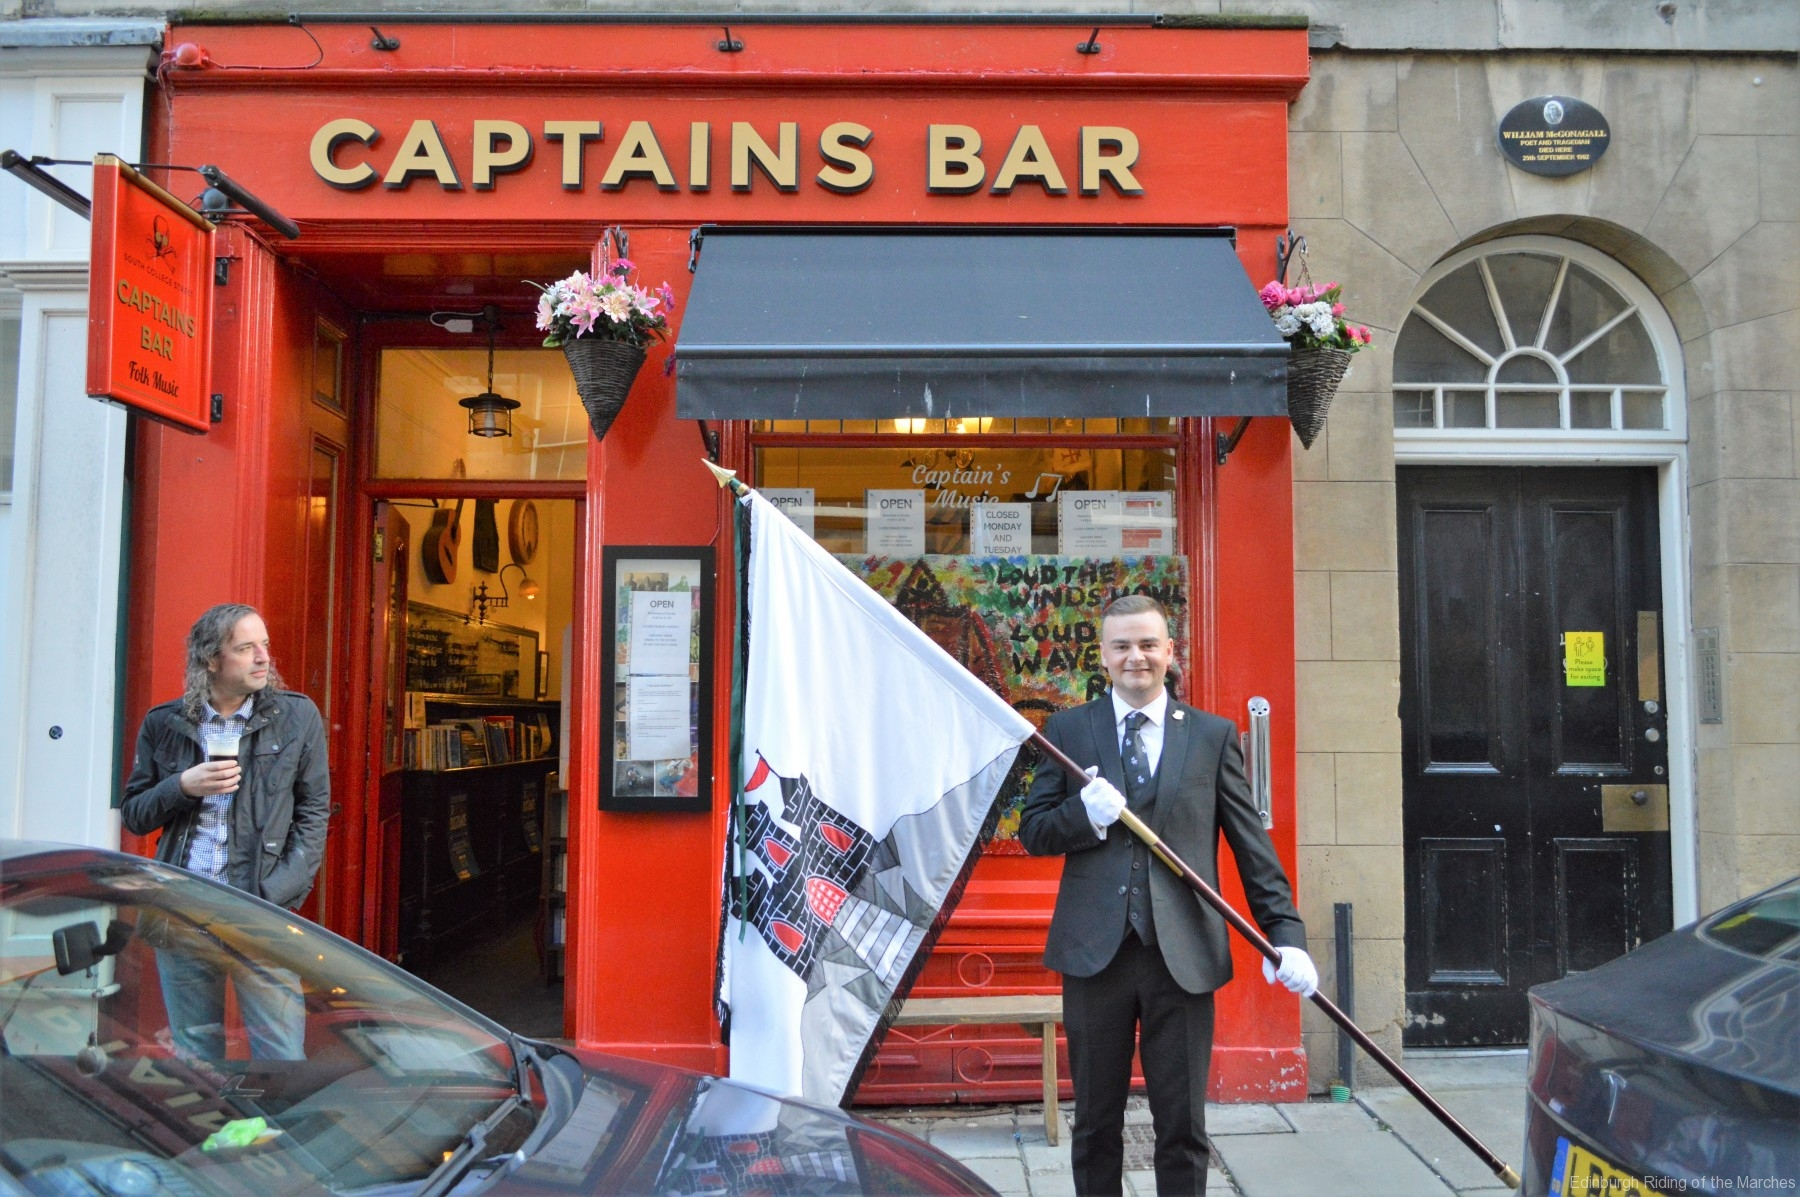 2021 Captain Elect, Jay Sturgeon outside the Captains Bar - our traditional annual photo op!